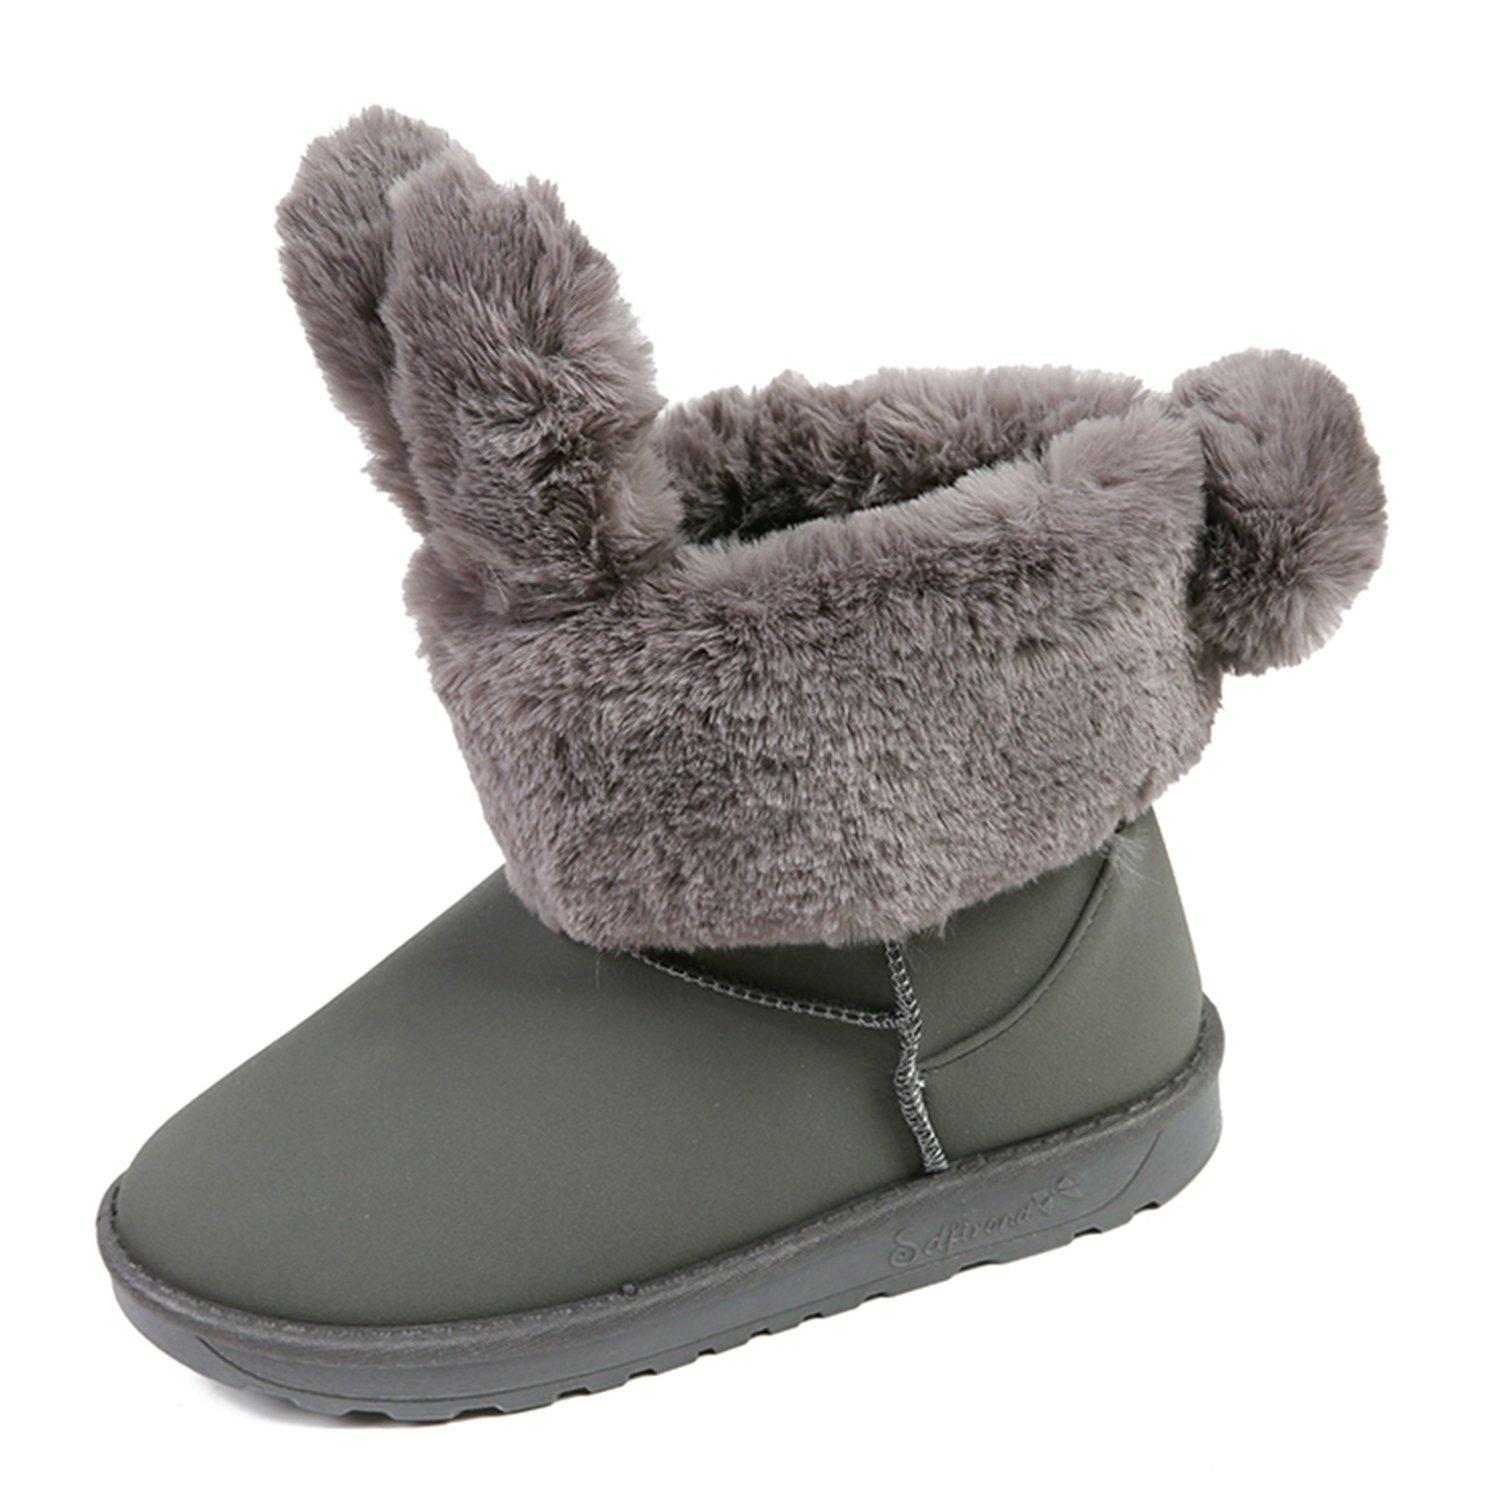 Girl's Womens Winter Fur Lining Cute Rabbit Cozy Warm Suede Snow Boots for Christmas Gift